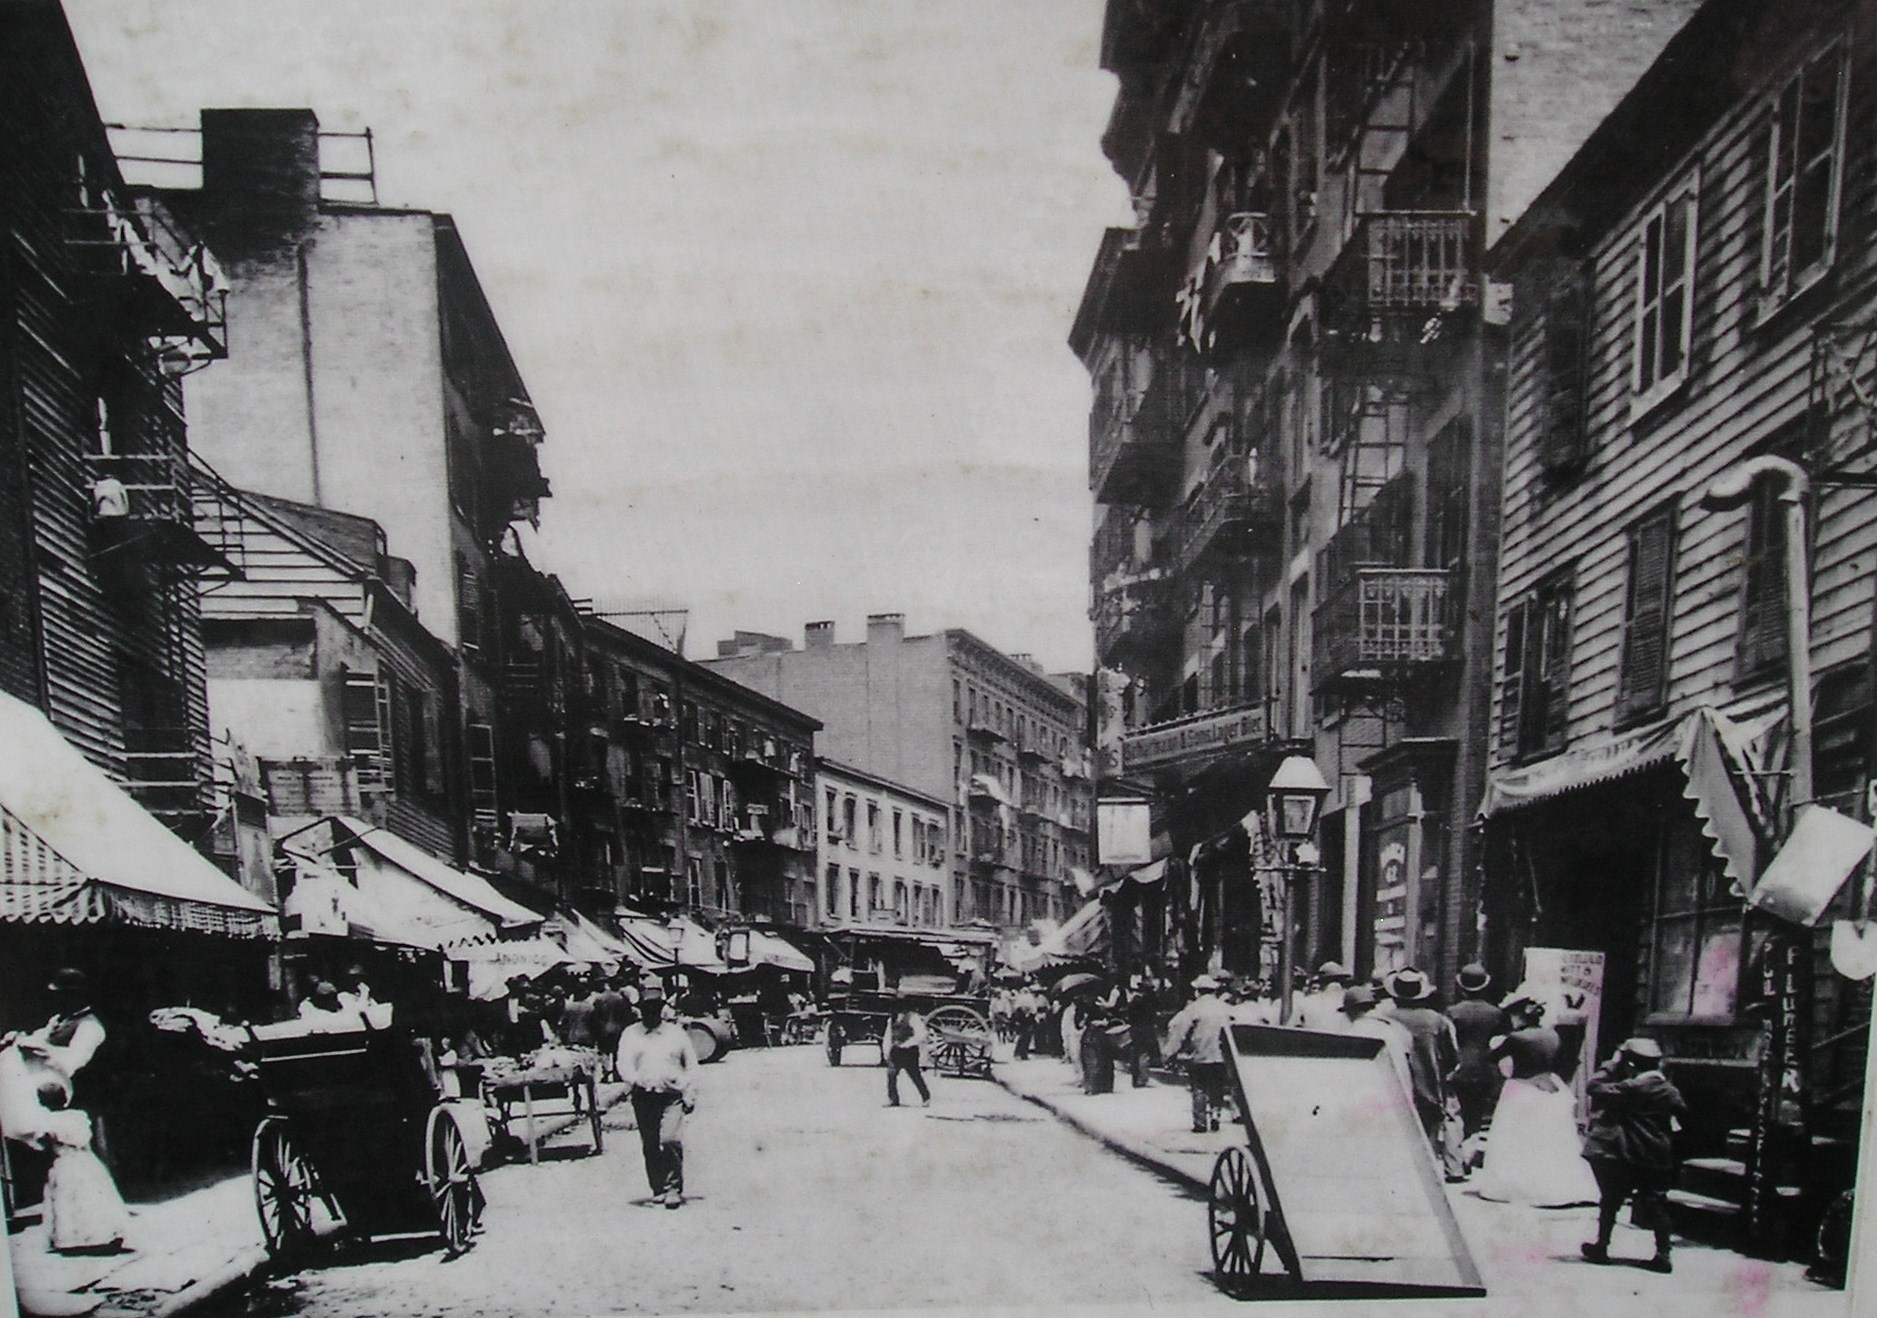 The Lower East Side, in the early 1900s.